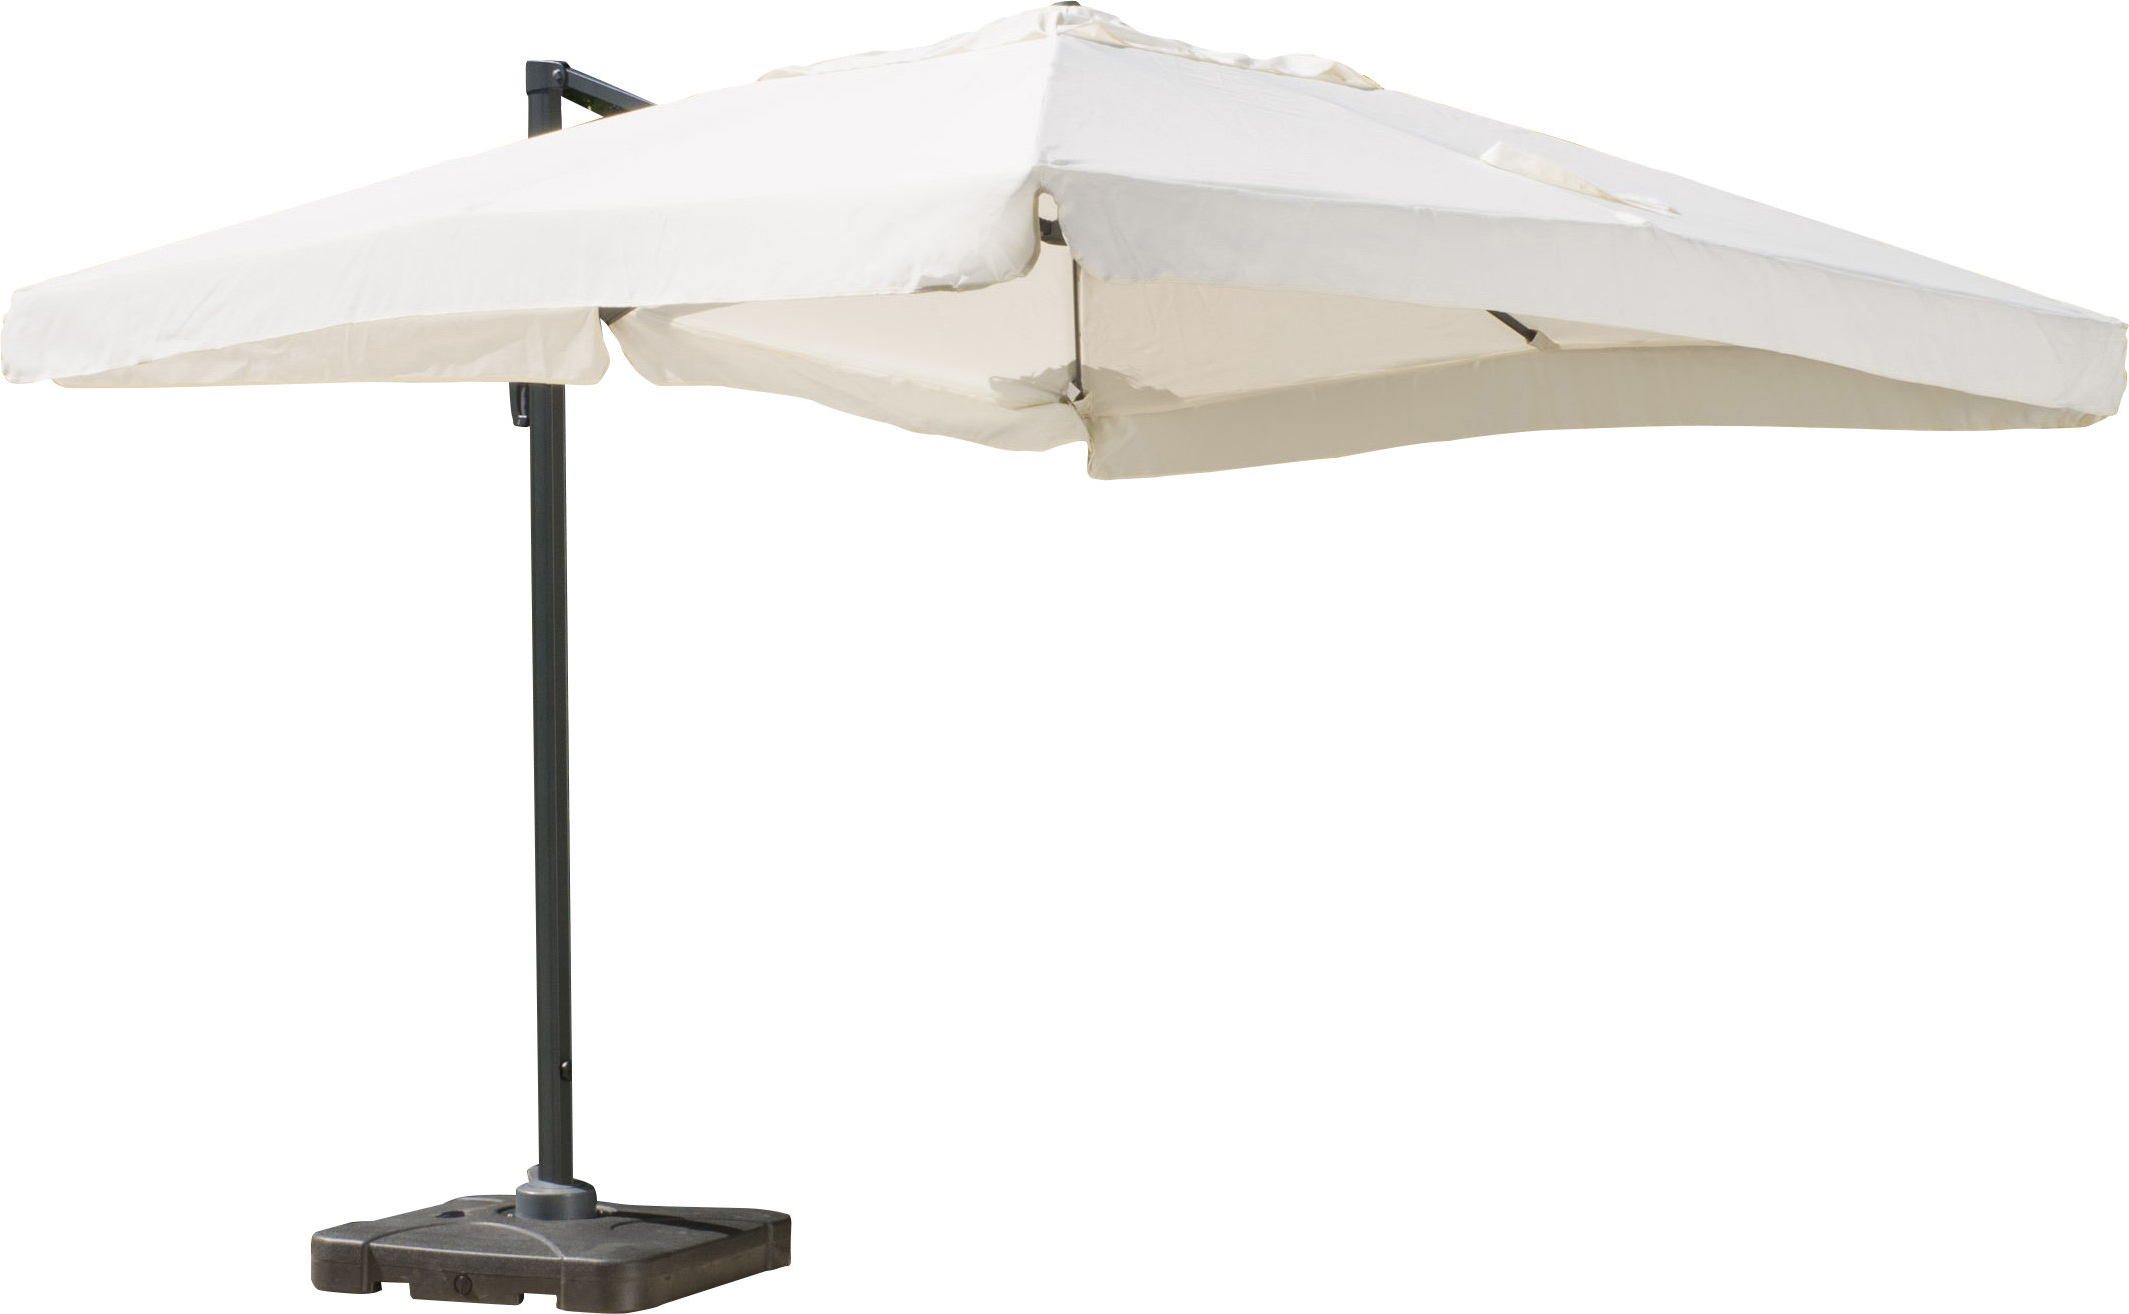 Bondi 9.8' Square Cantilever Umbrella Inside Most Up To Date Bormann Cantilever Umbrellas (Gallery 15 of 20)